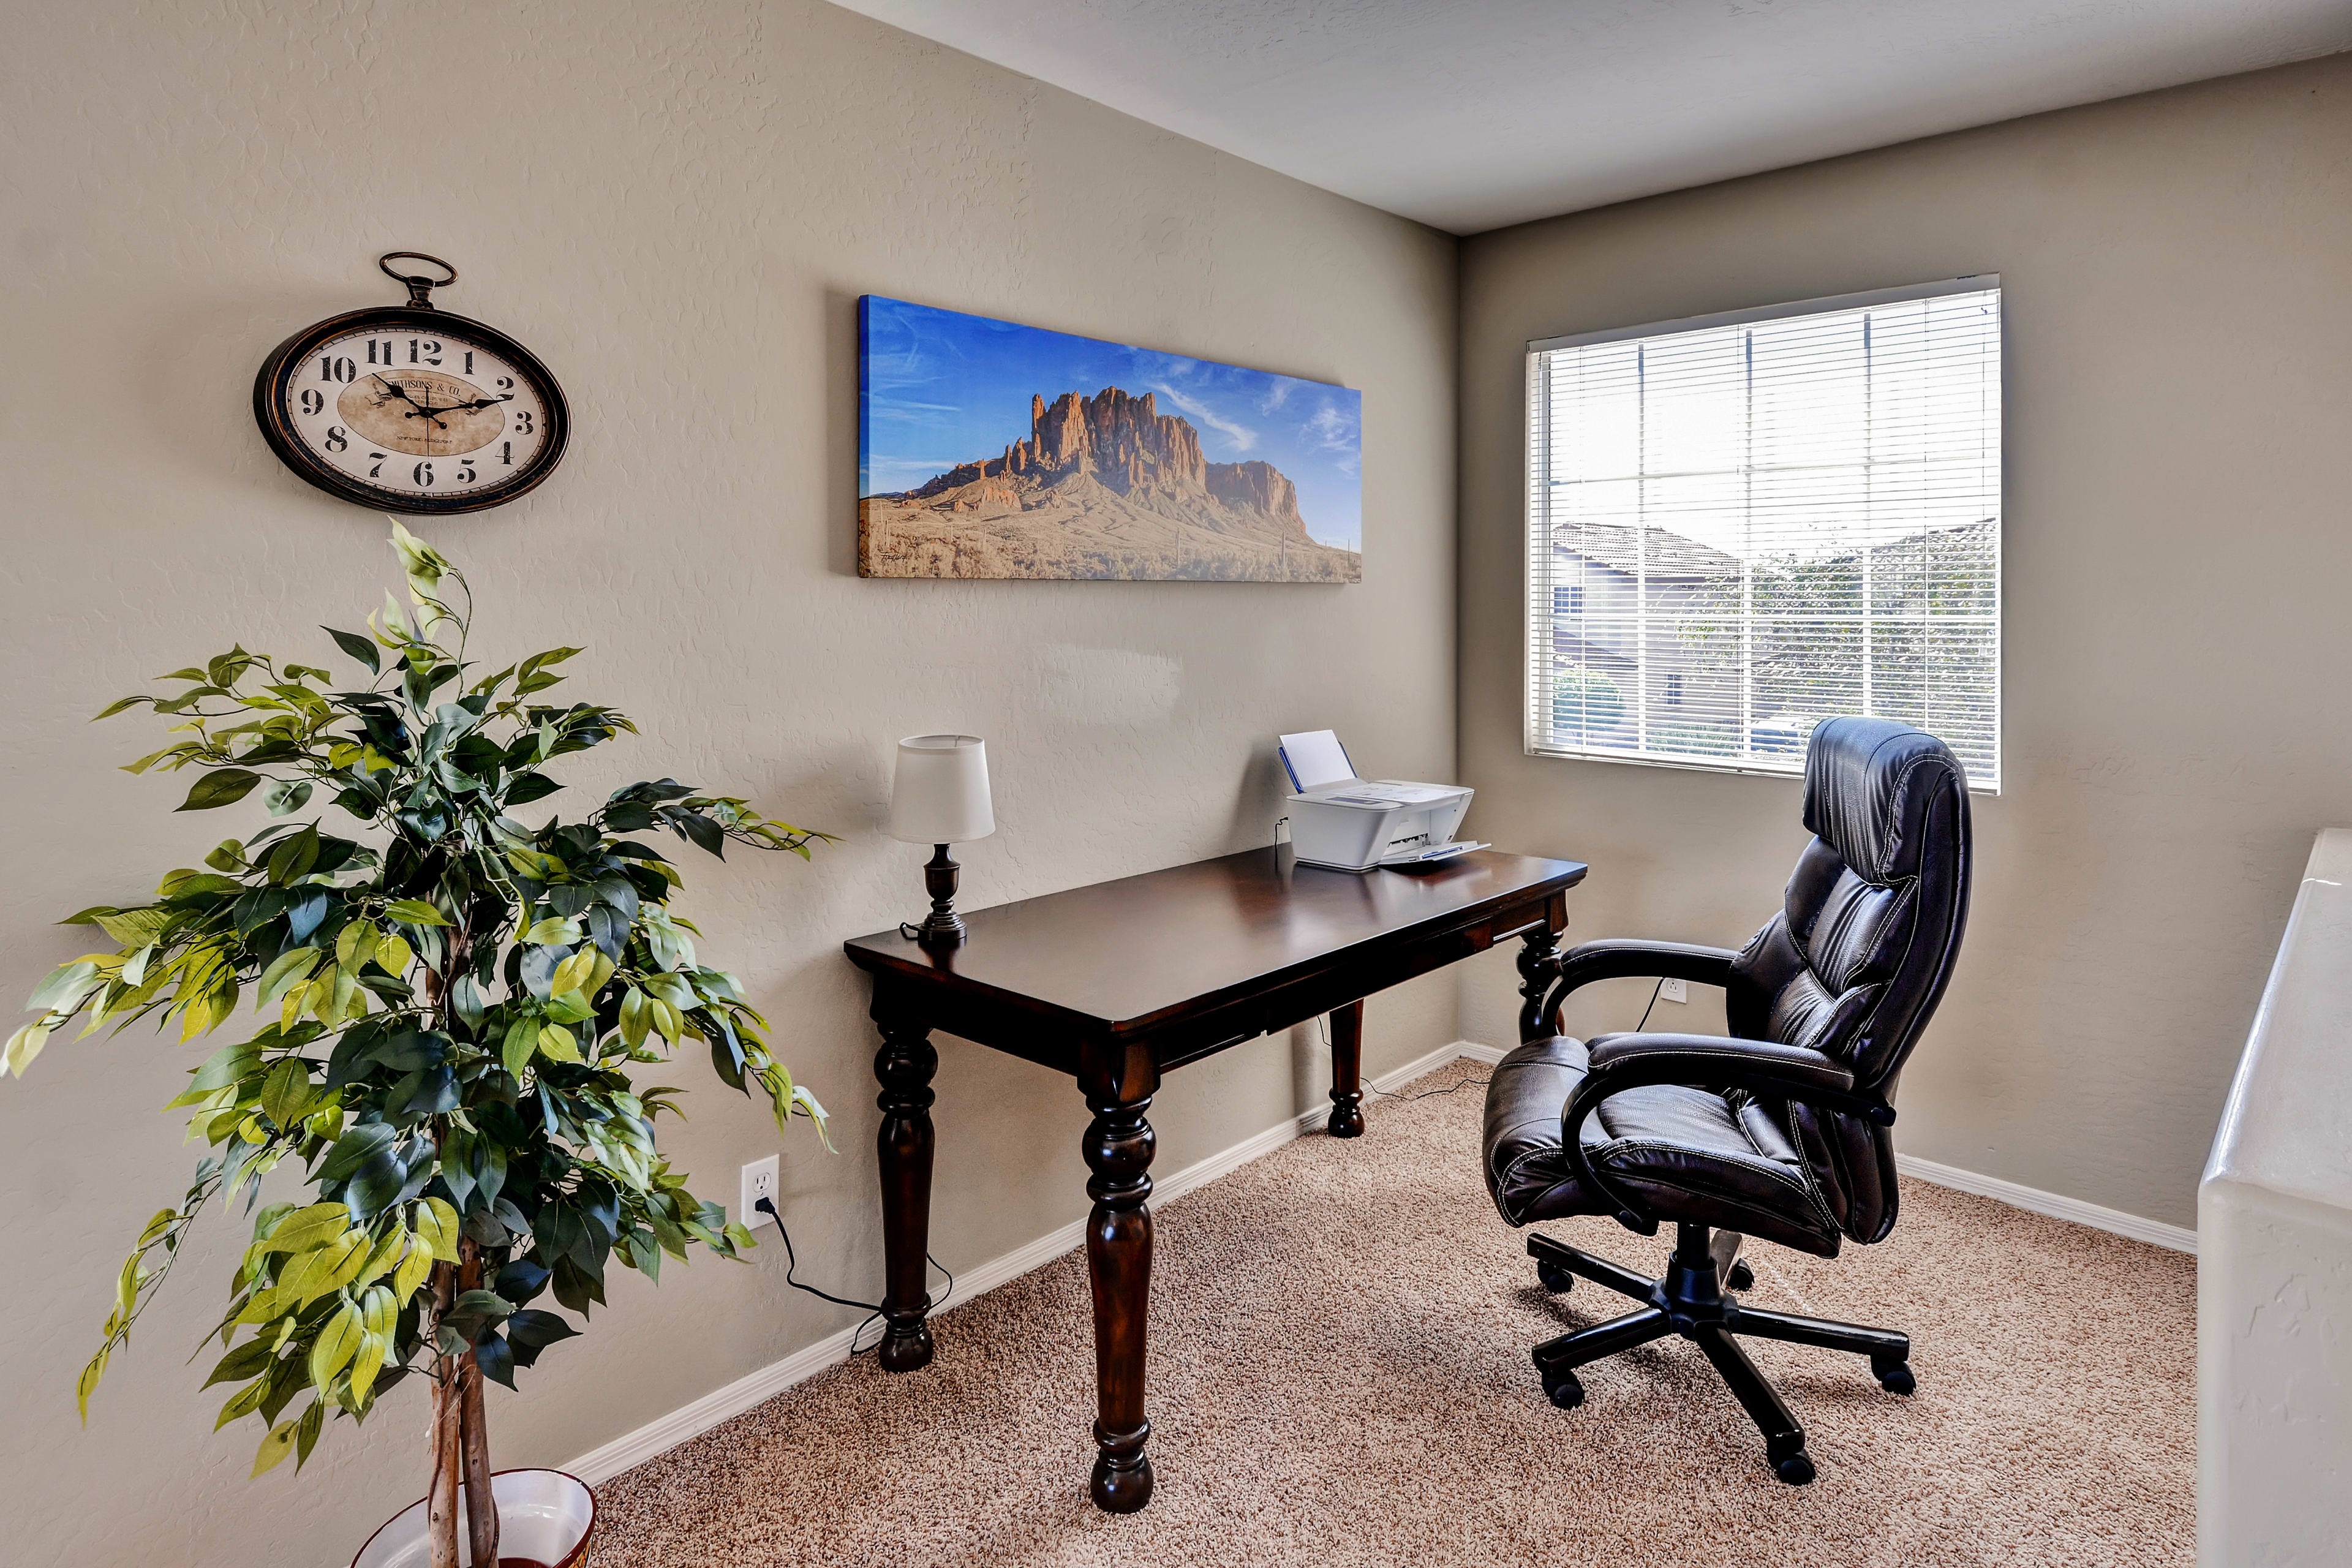 An office space is available if you need to get work done while away from home.